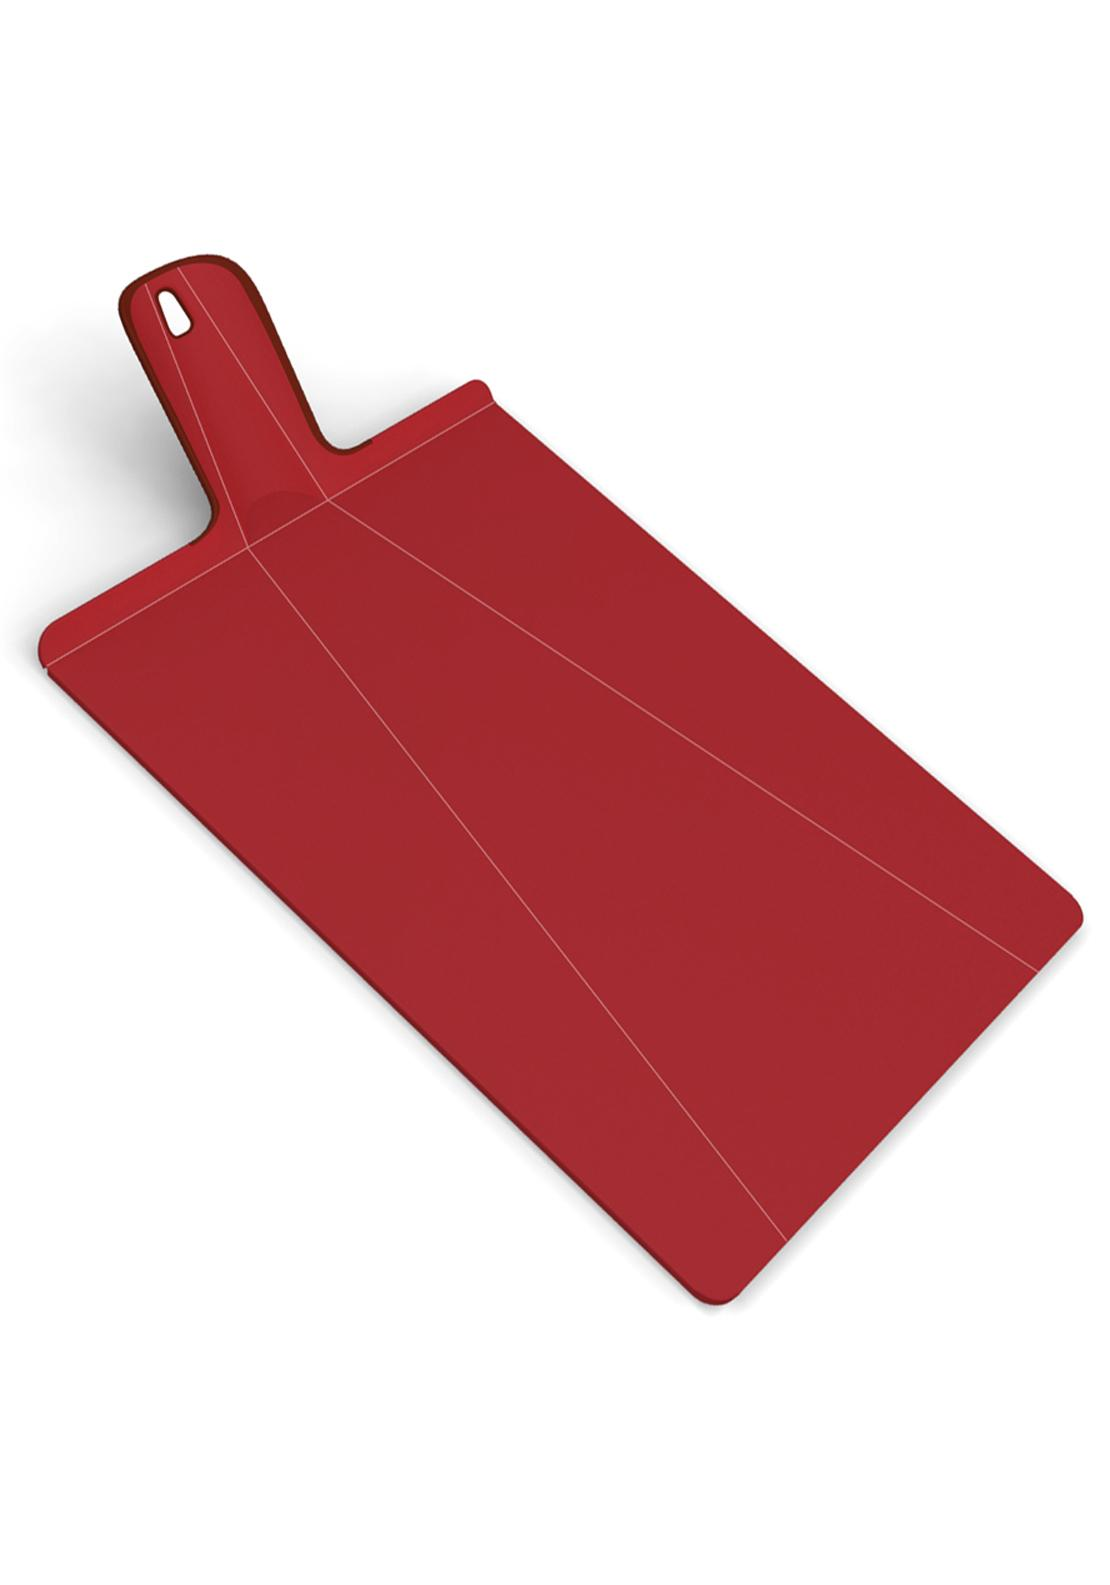 Joseph Joseph Chop2Pot Plus Large, Red